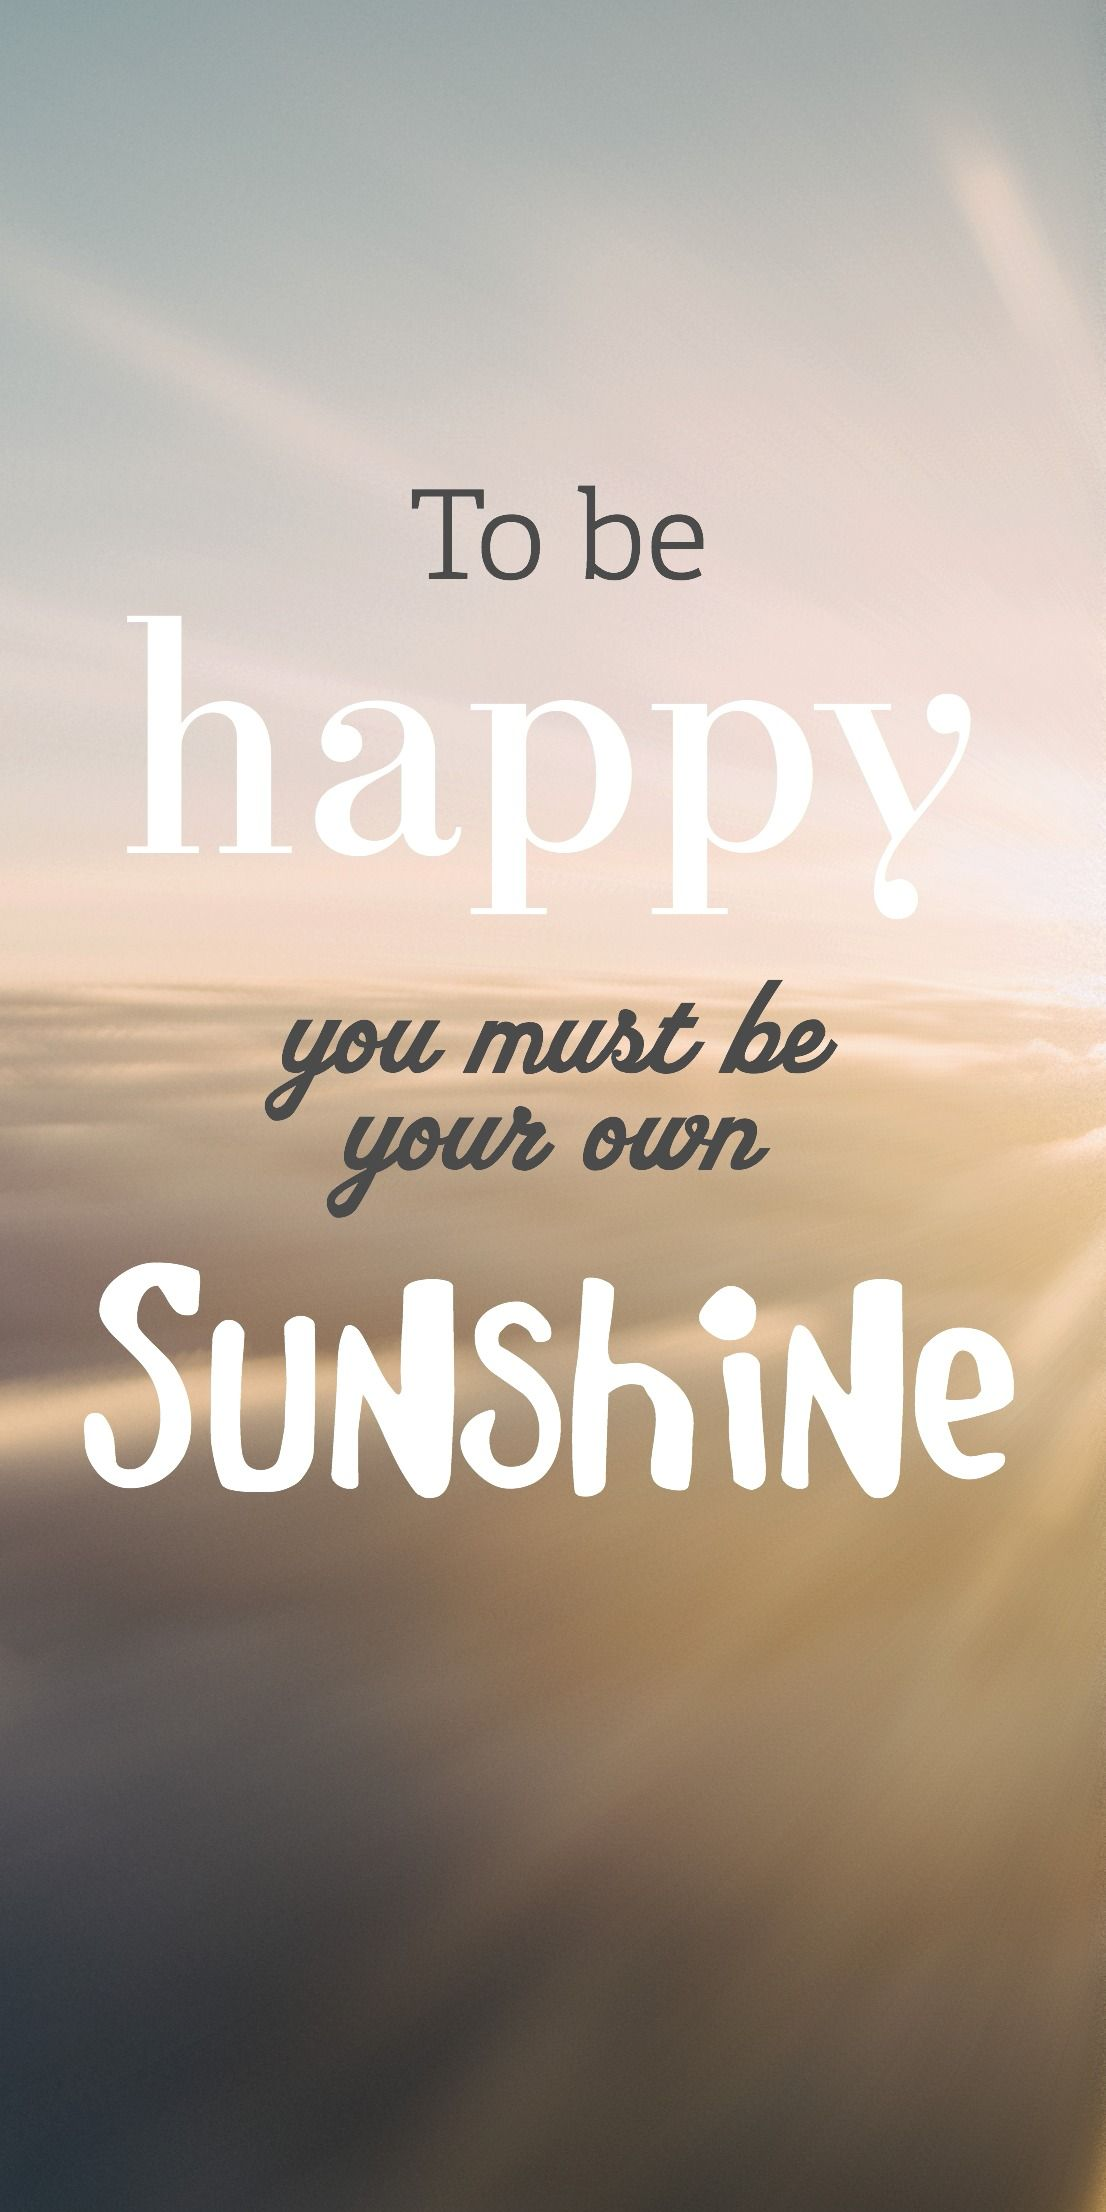 To Be Happy You Must Be Your Own Sunshine Kindkudos Inspire